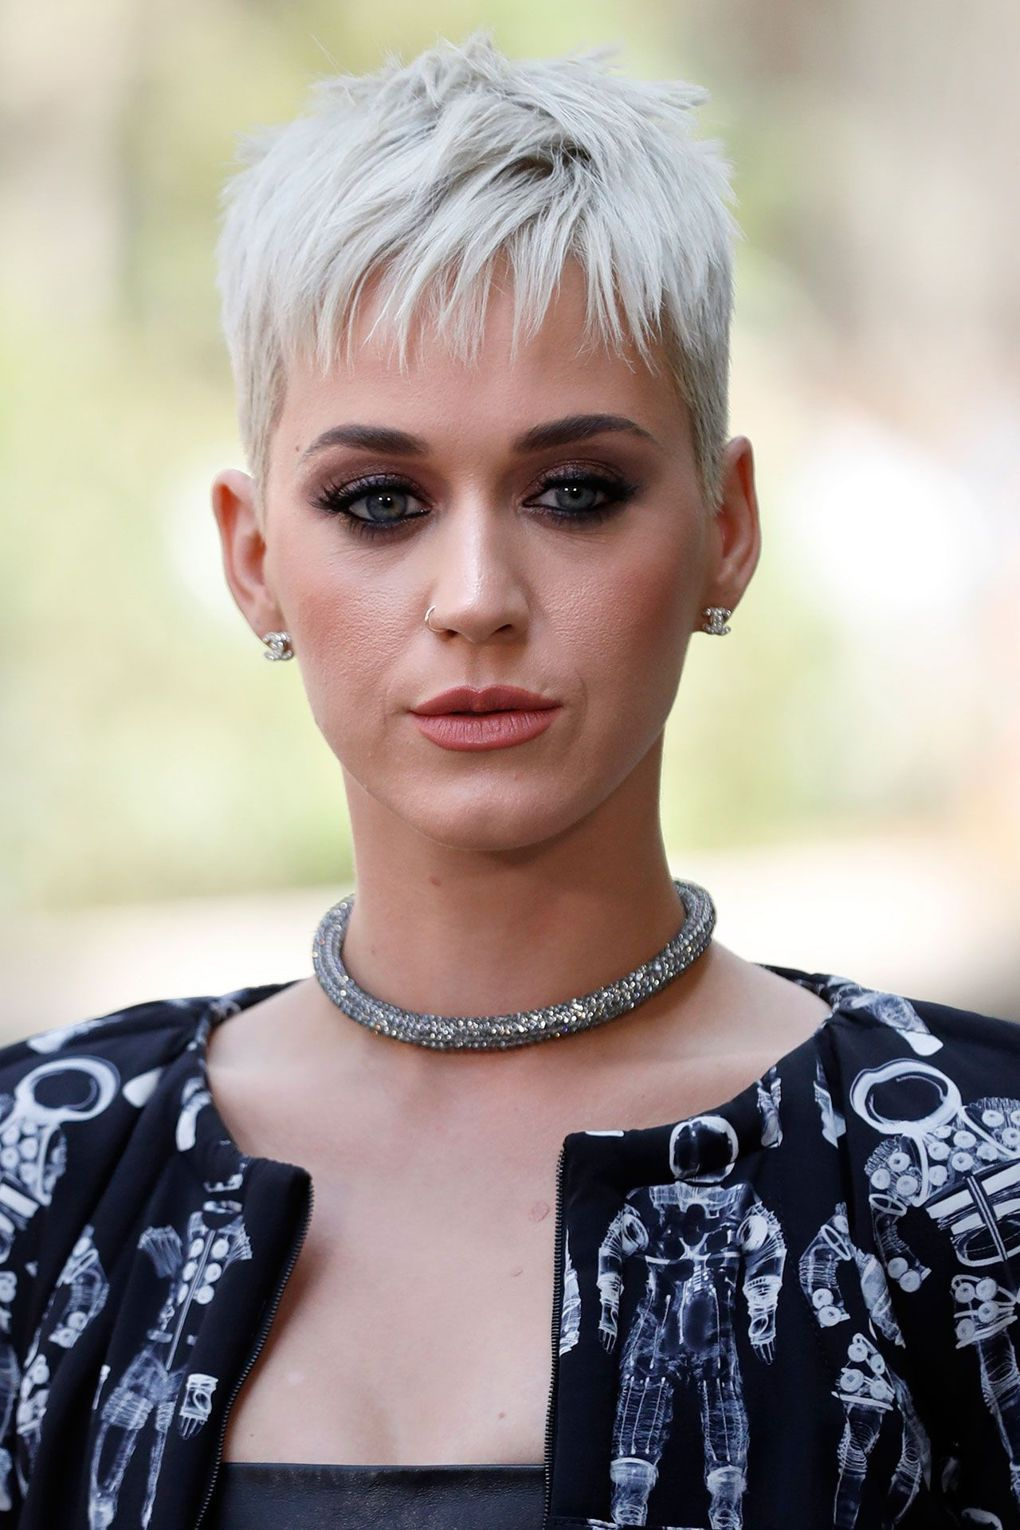 Katy Perry Reveals The Real Reason She Cut Her Hair Katie Perry